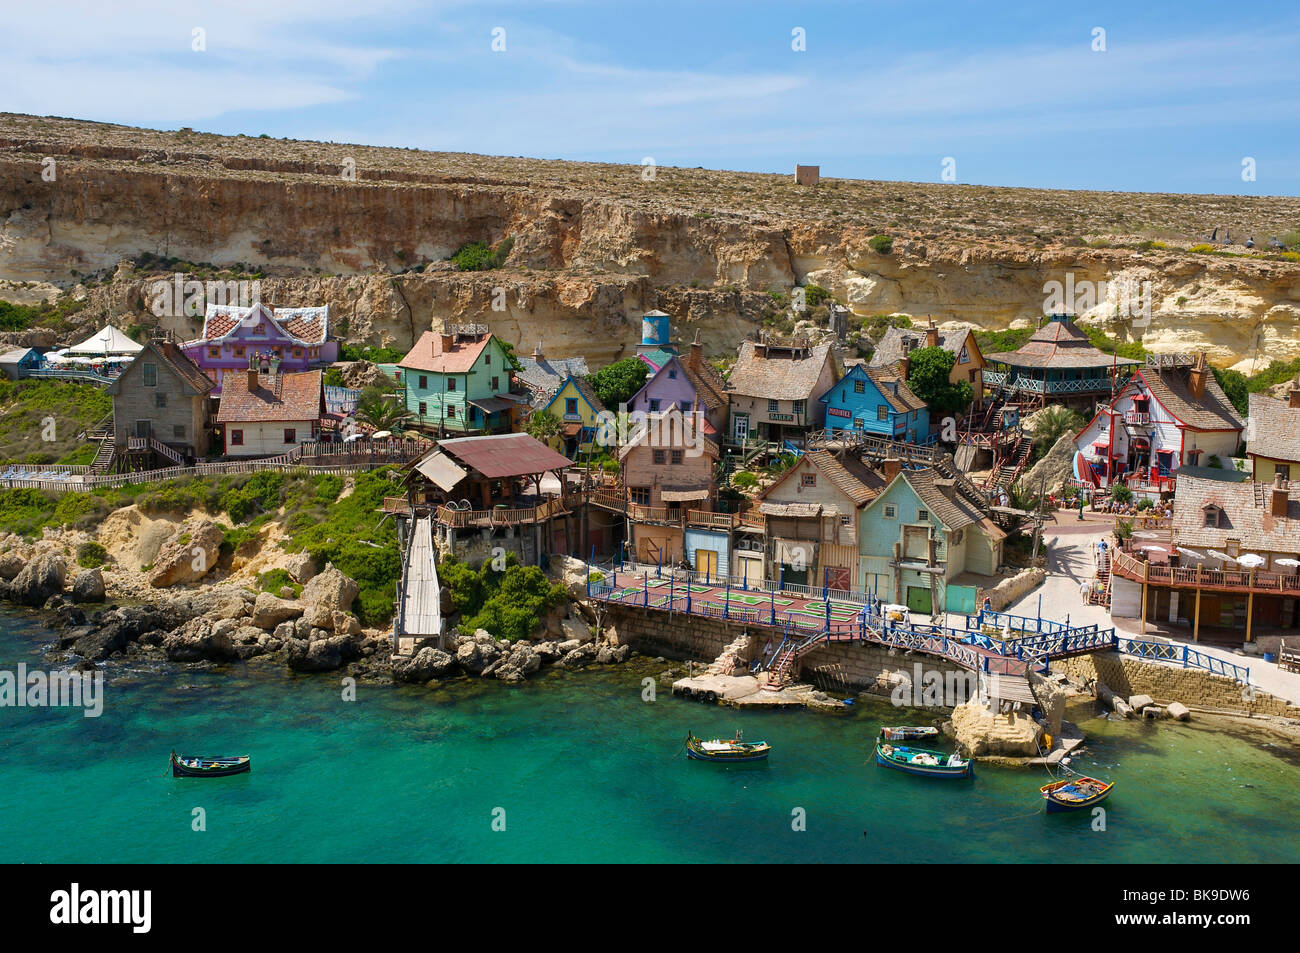 Popeye village in Malta, Europe - Stock Image